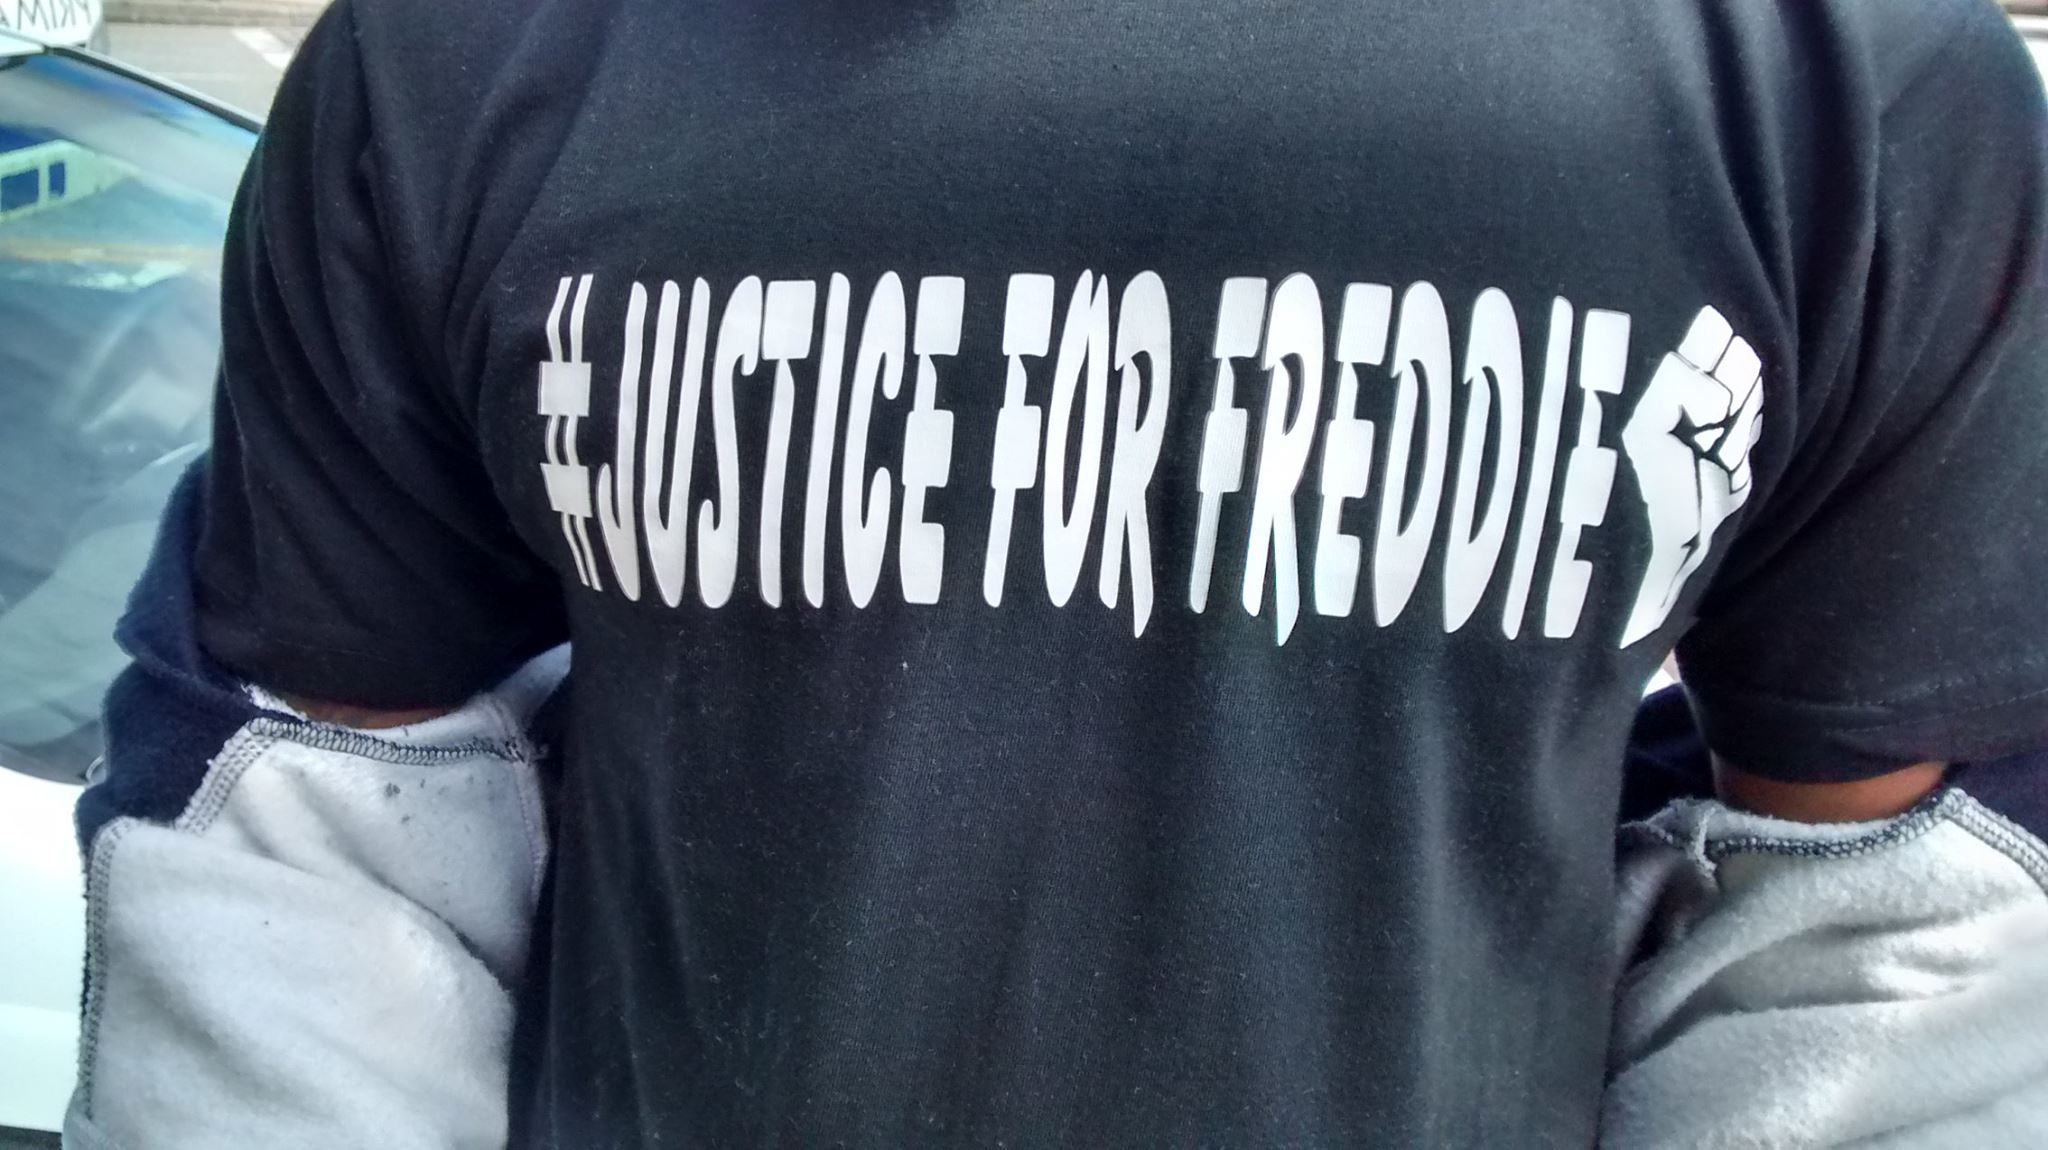 The call for justice for Freddie Gray on May Day in the U.S.